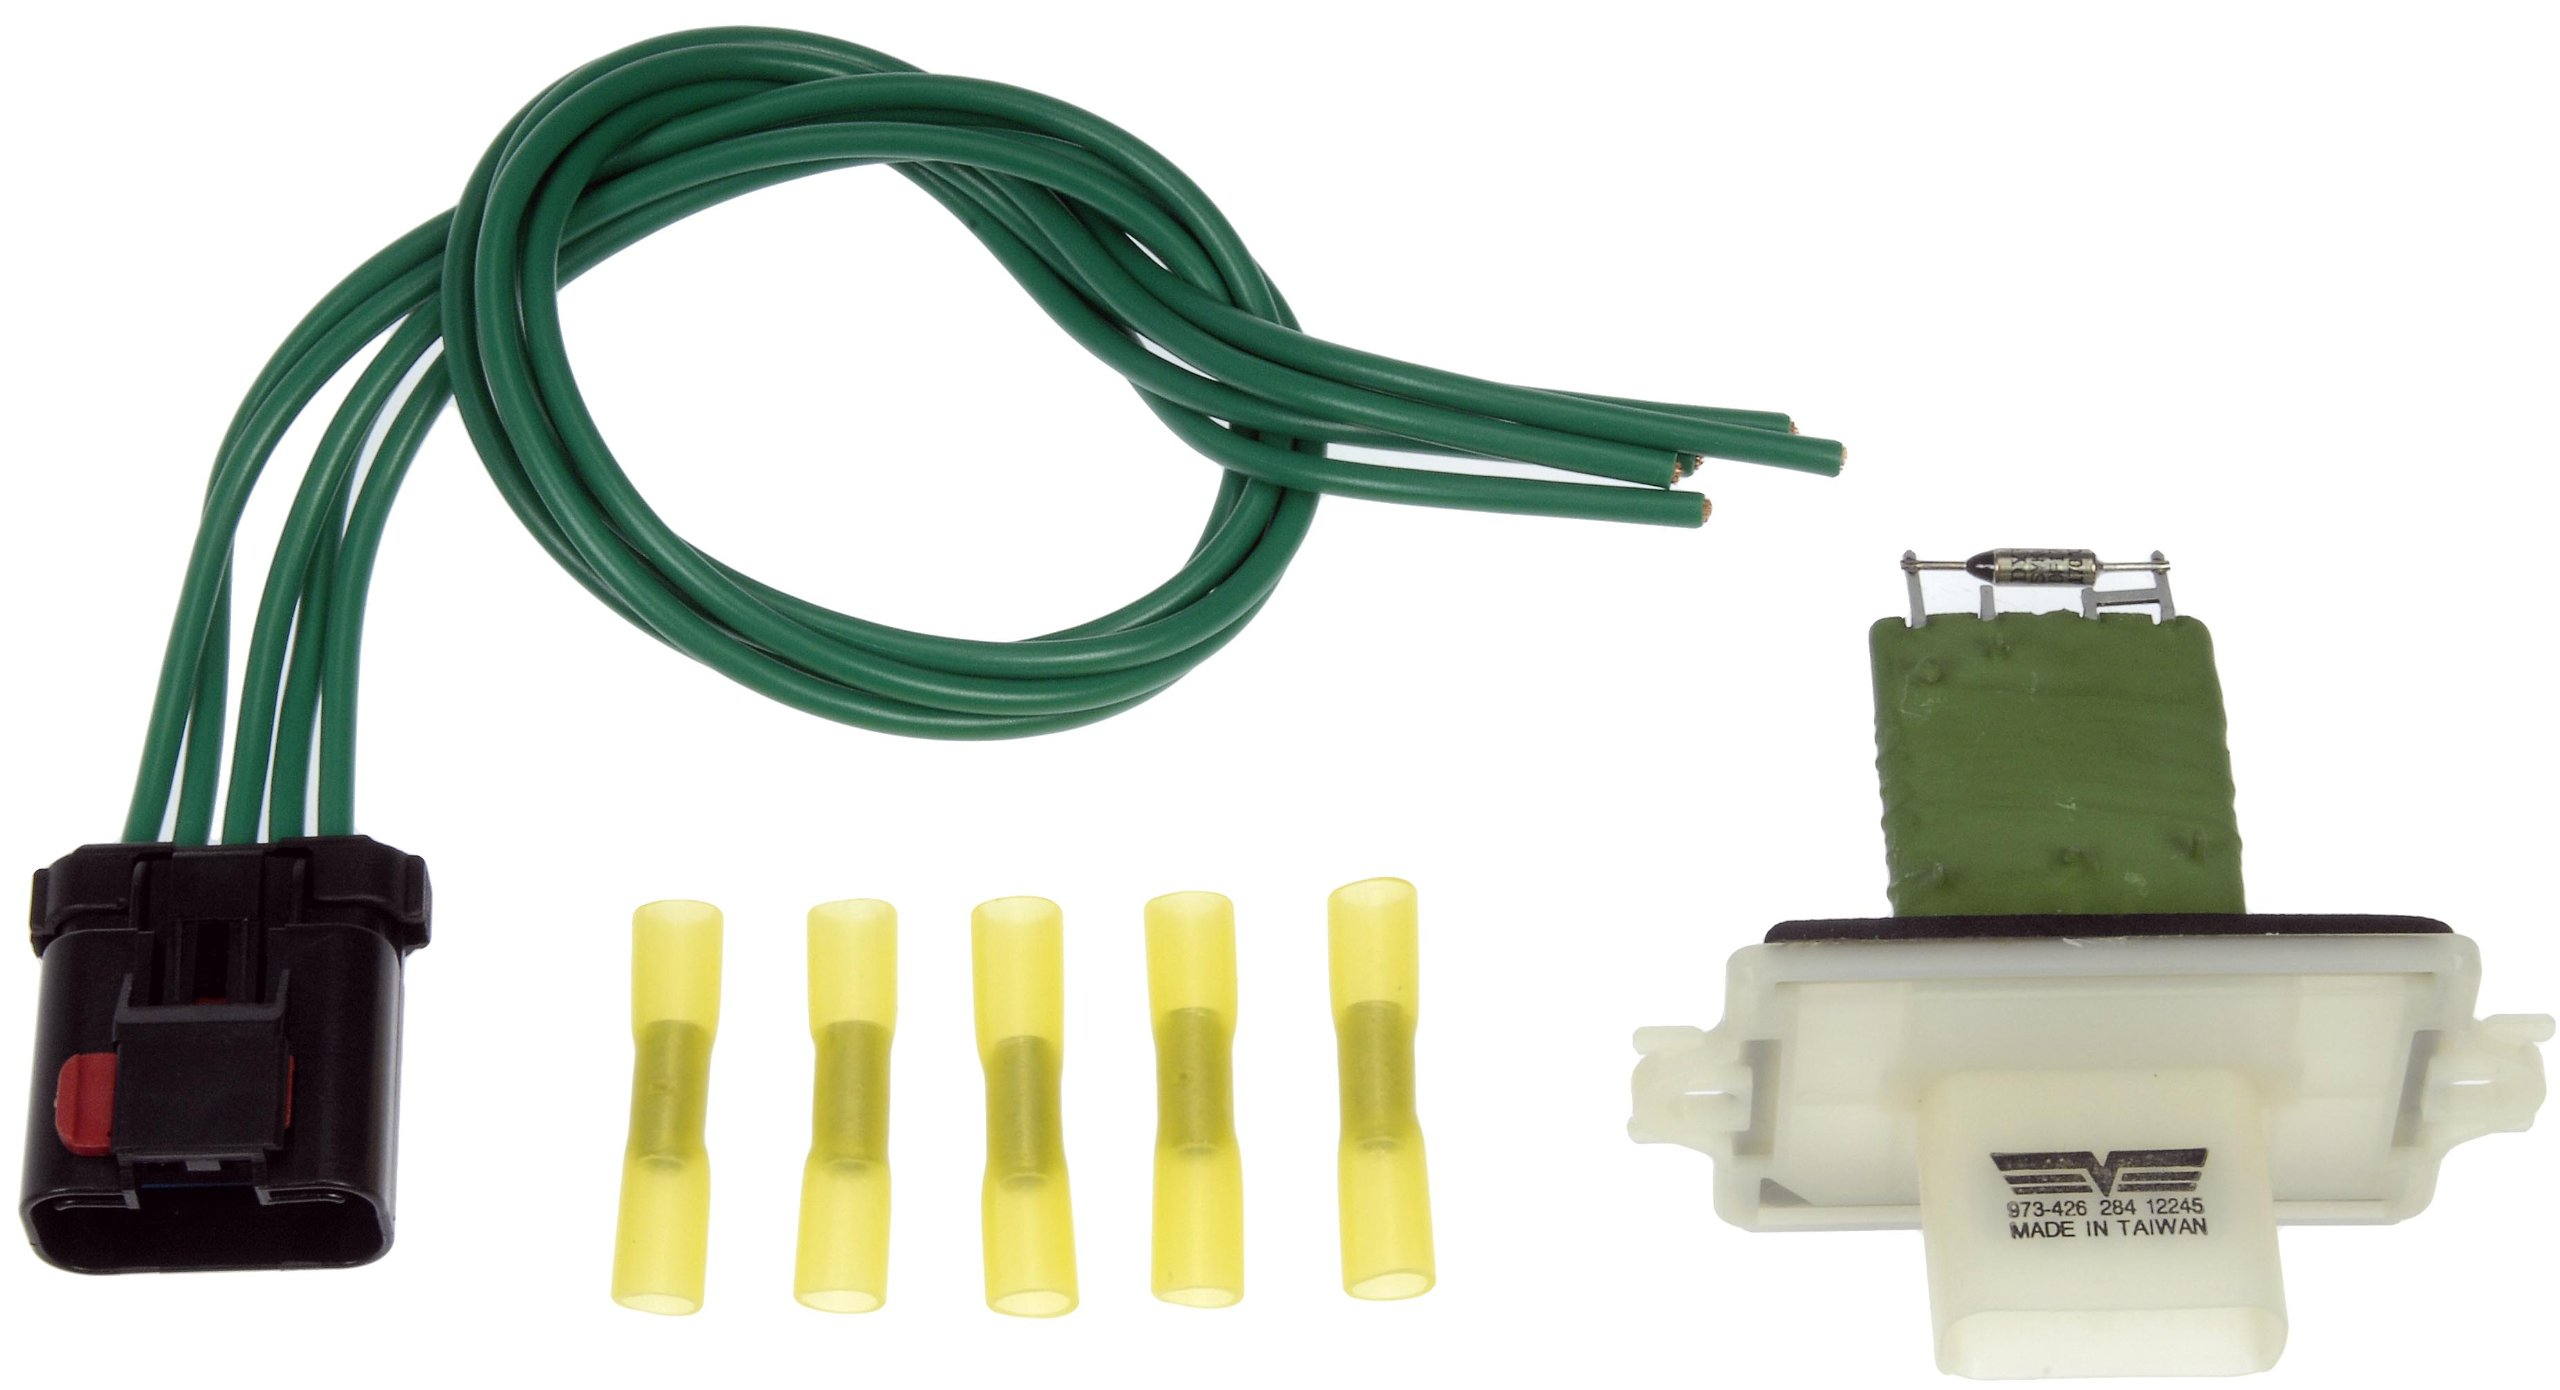 Dorman 973-426 Blower Motor Resistor Kit by Dorman